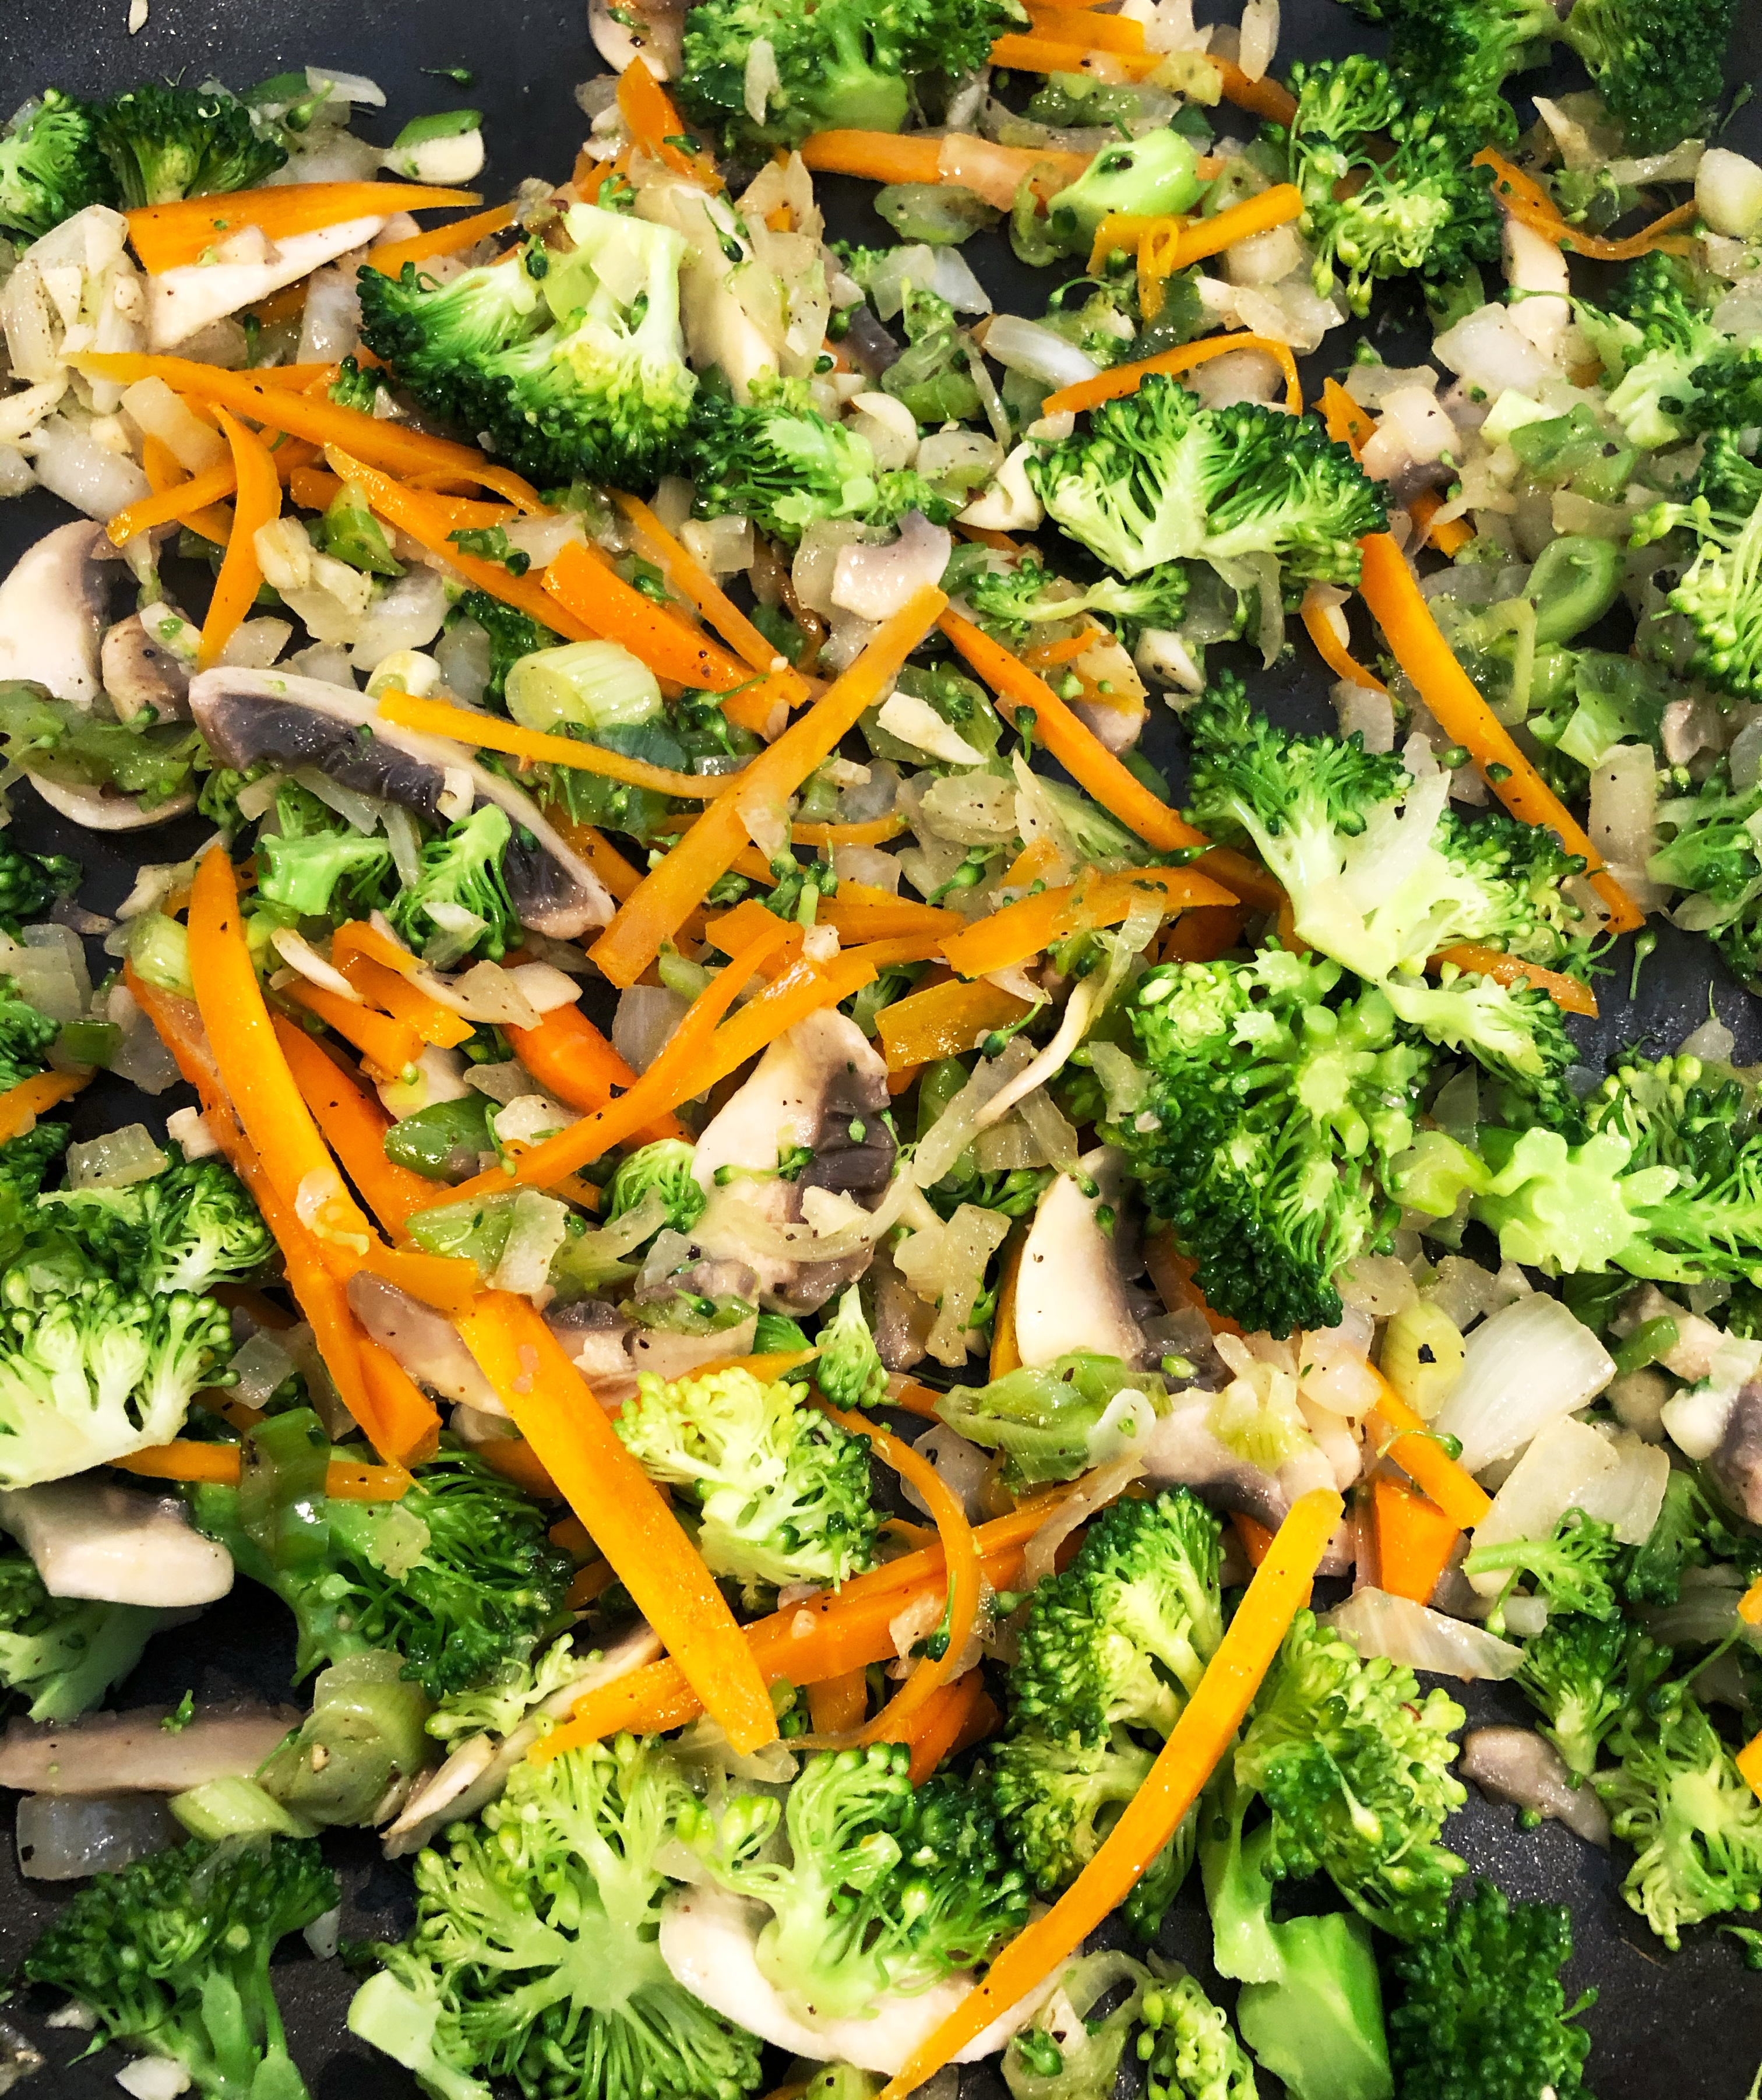 sauteed vegetables for stir fry